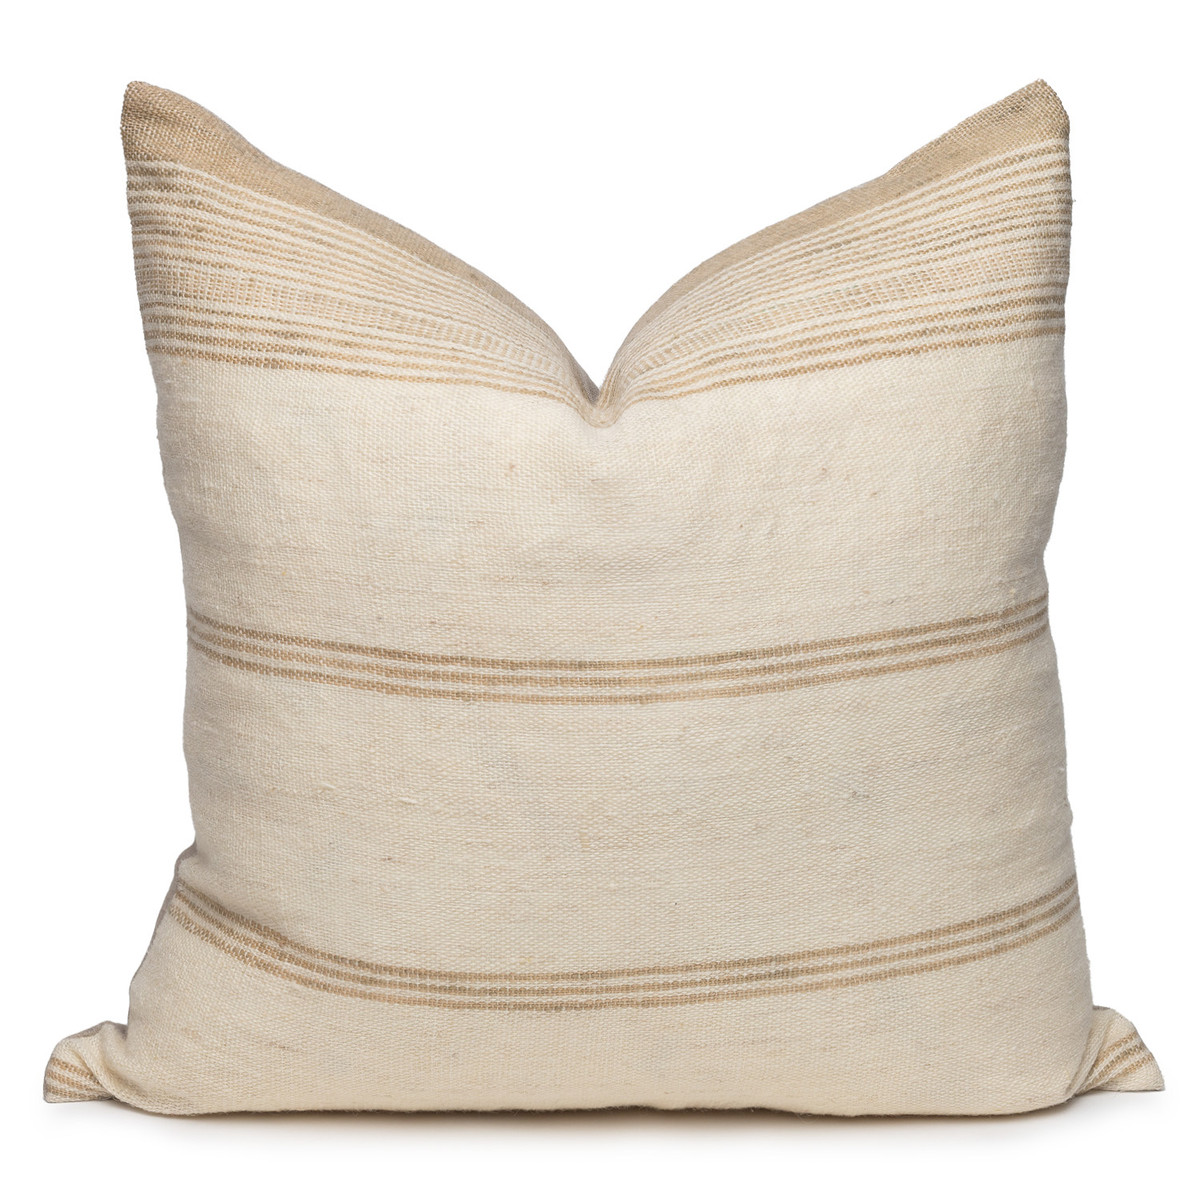 Trevor Handspun Indian Wool Ivory and Creme Pillow- 22- Front View